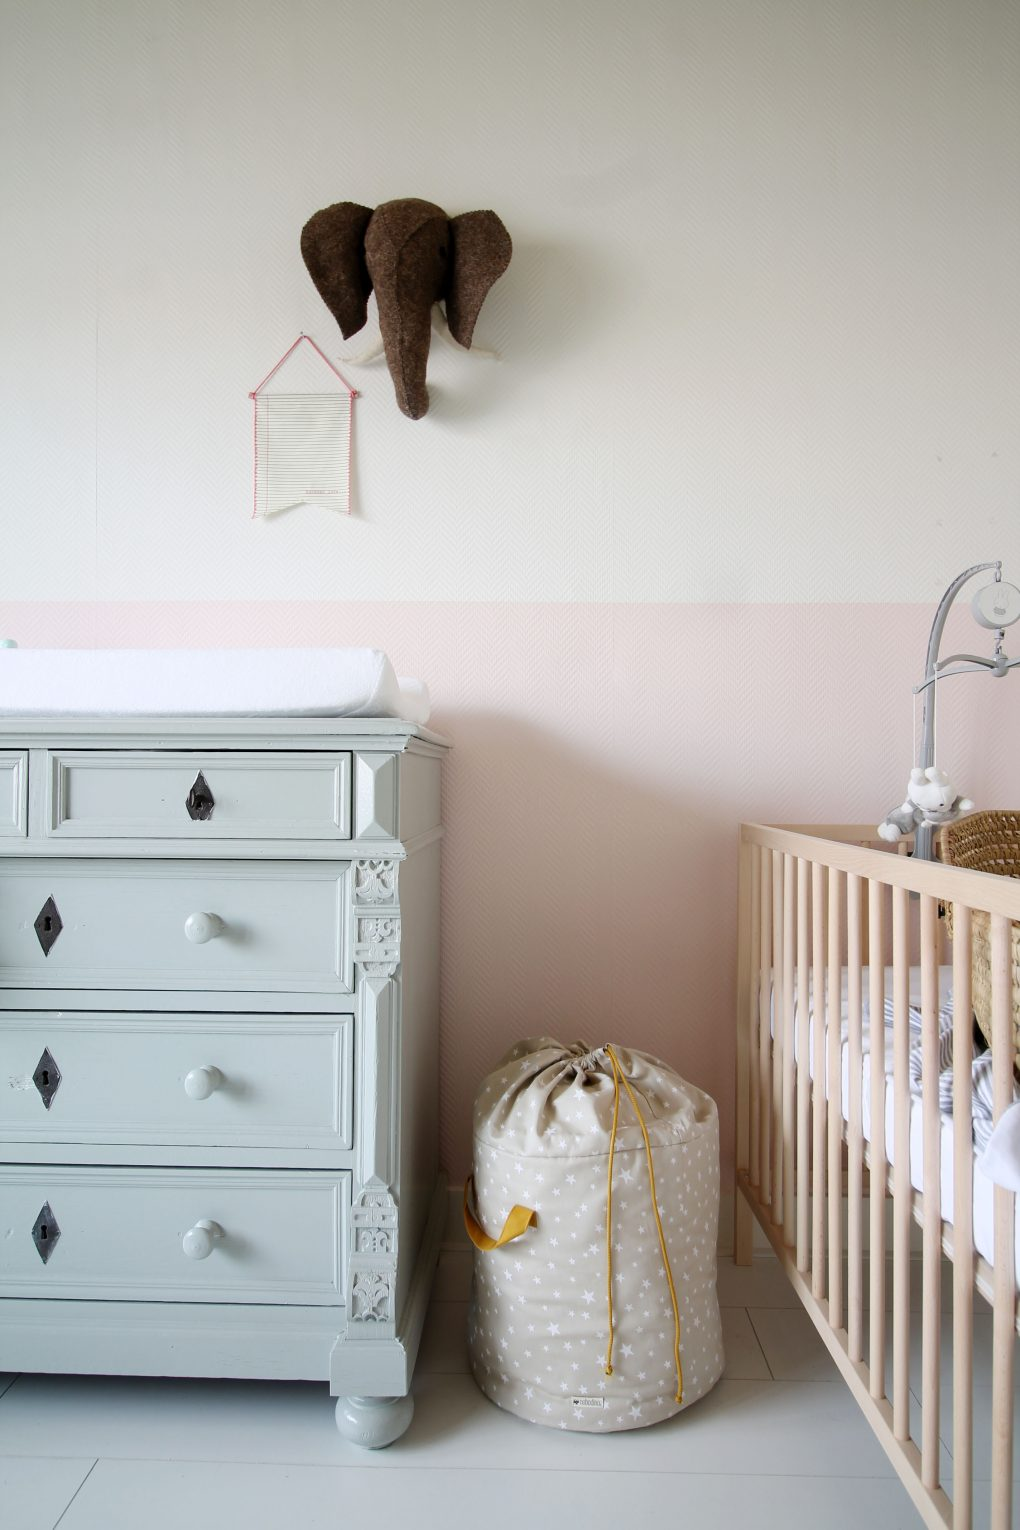 Storage for your bébé's room